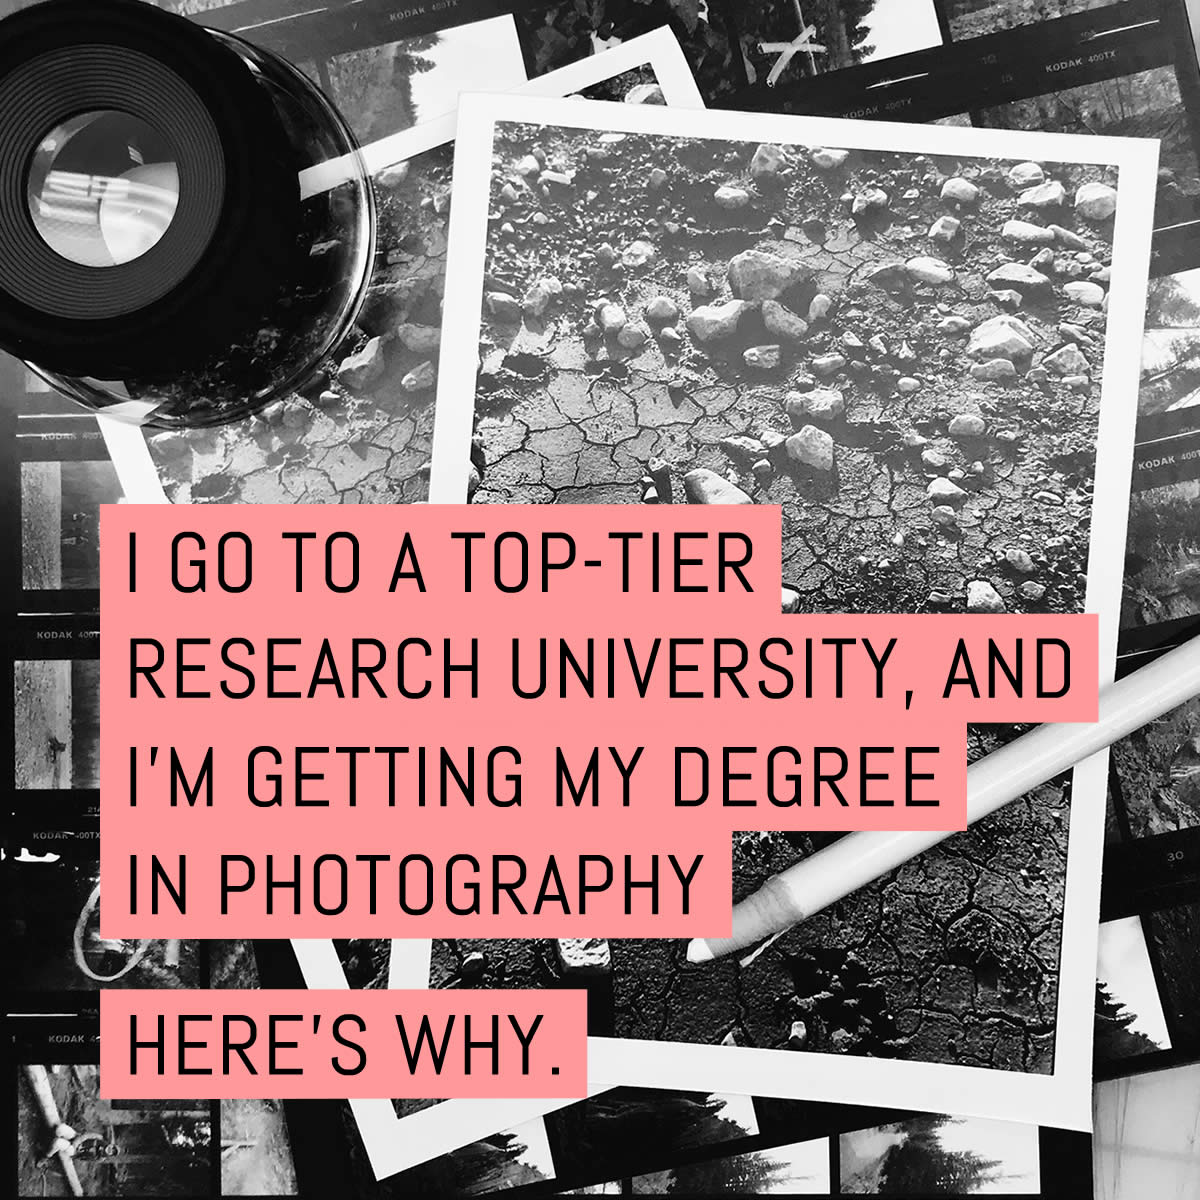 Cover - I go to a top-tier research university, and I'm getting my degree in photography. Here's why.